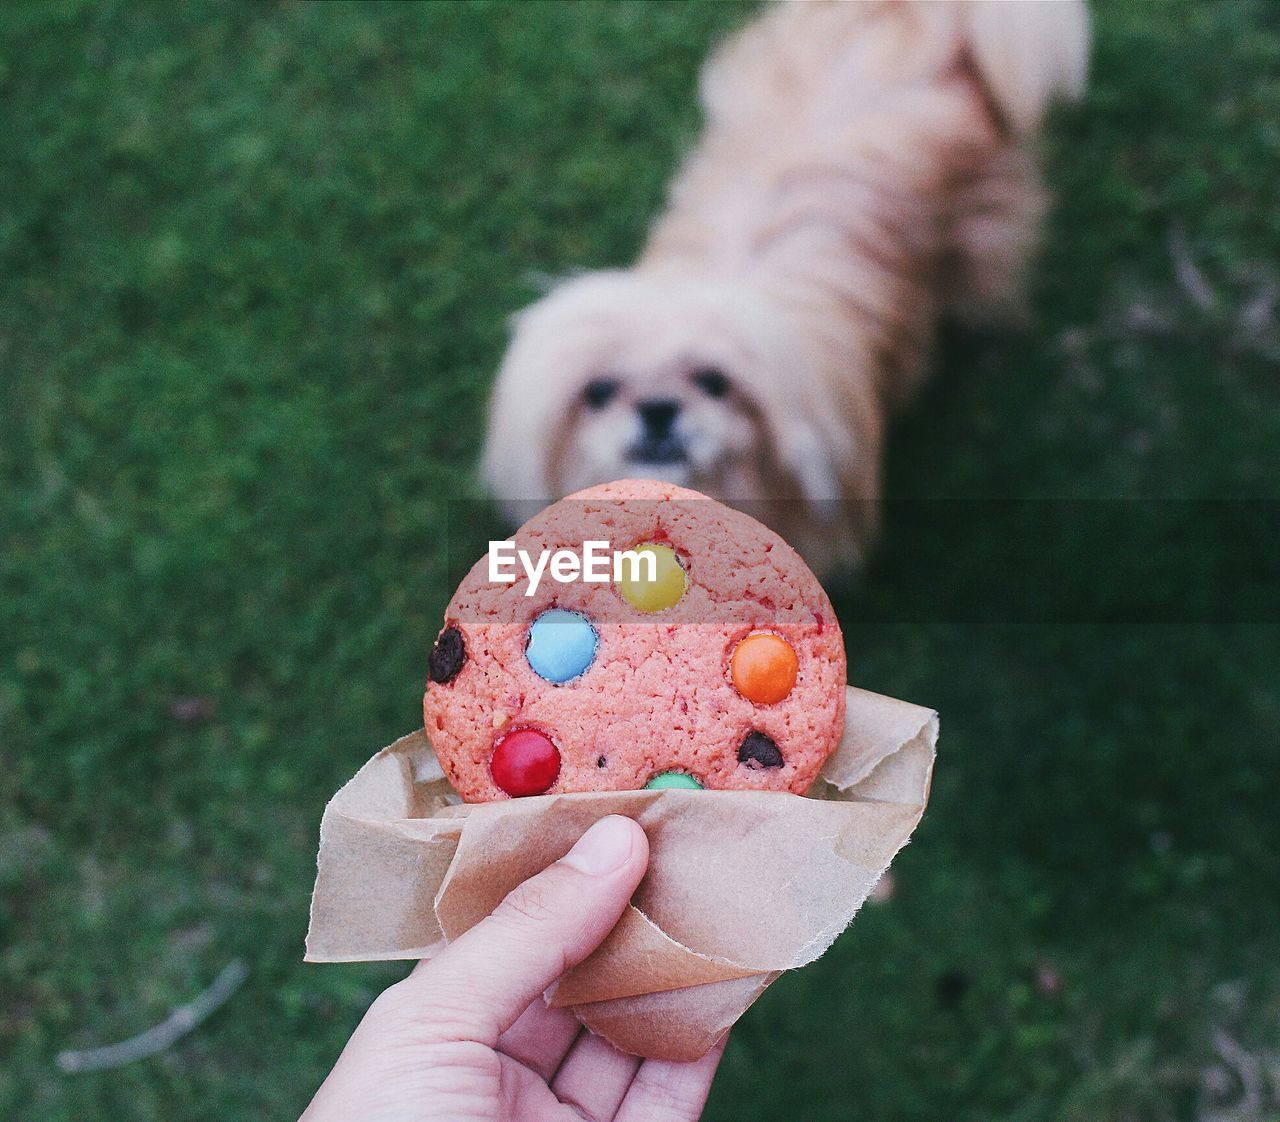 Cropped image of person holding cookie against shih tzu puppy